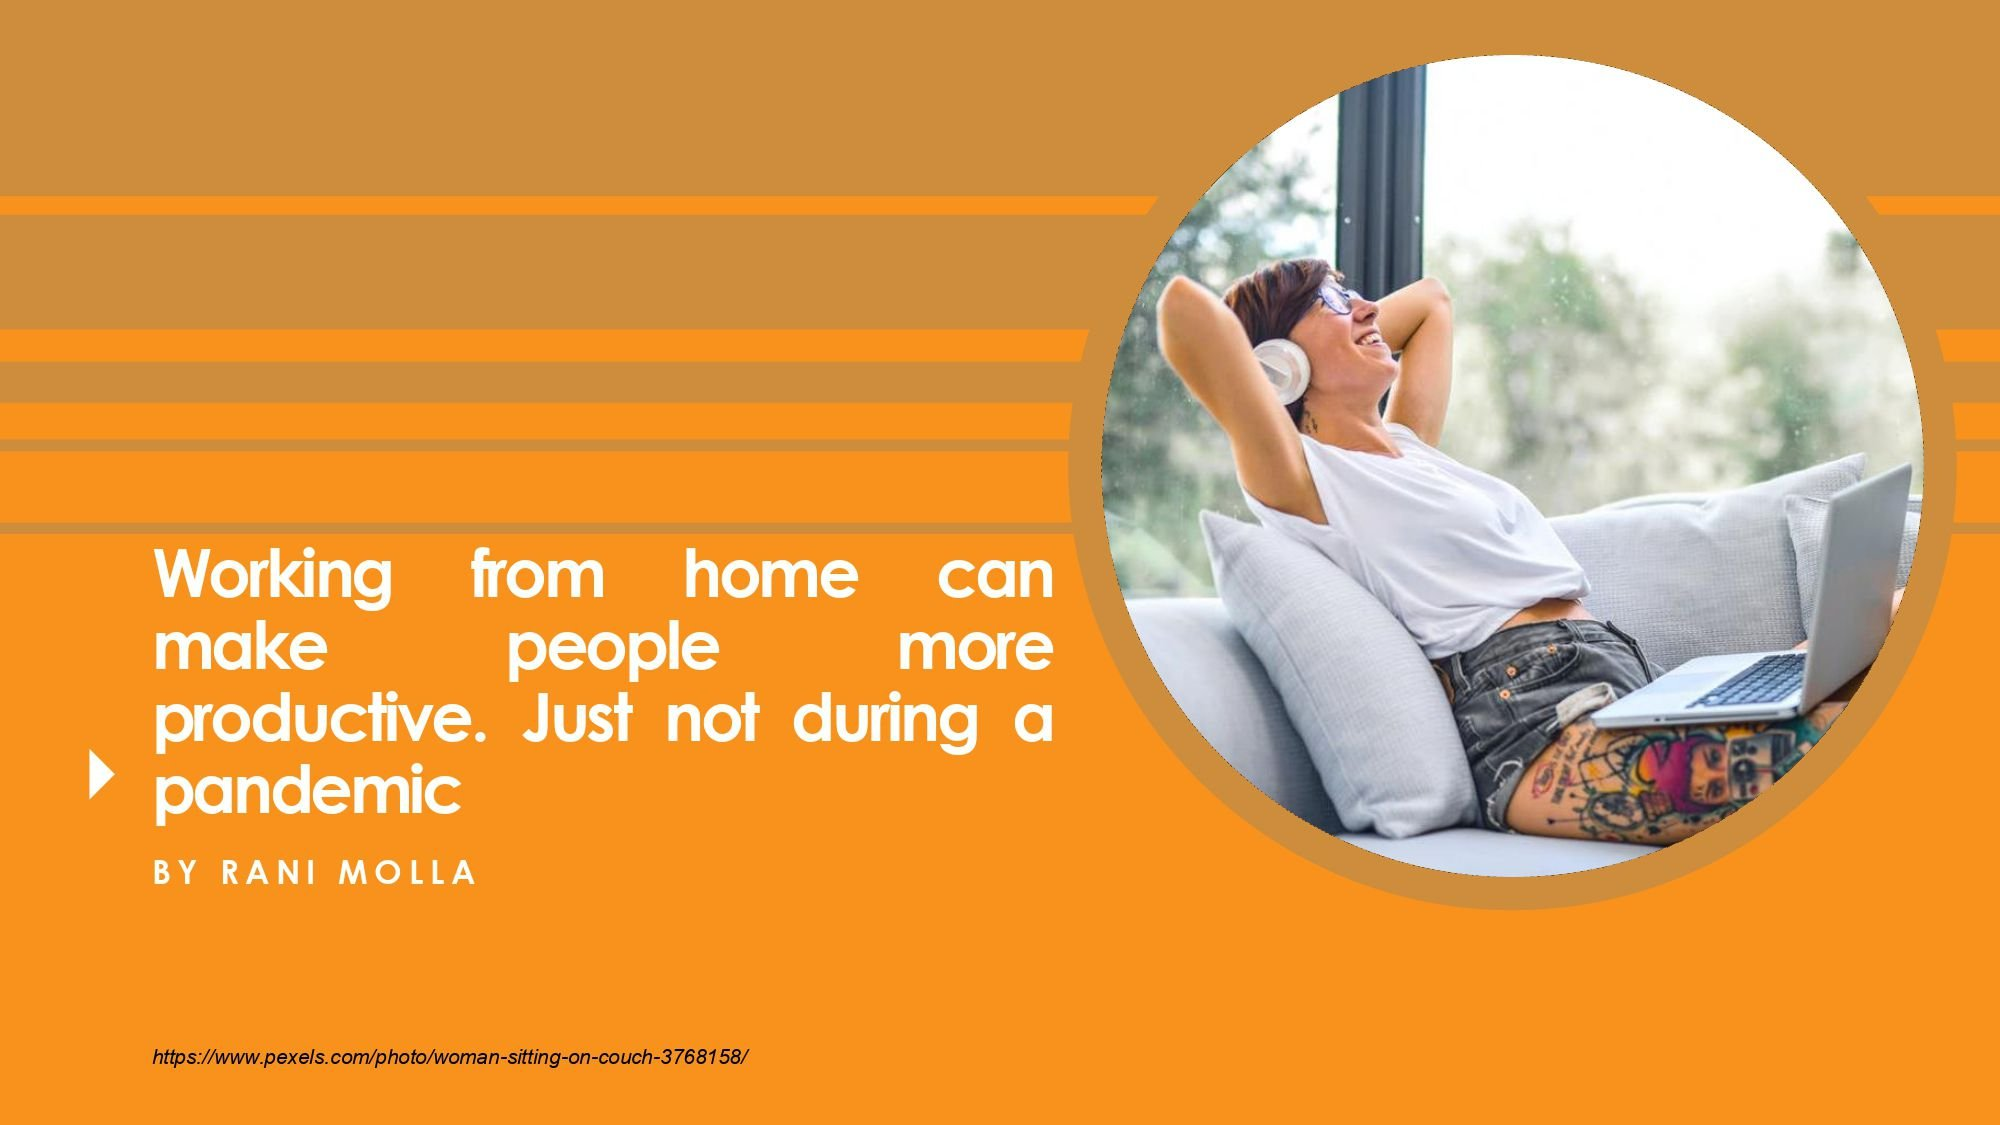 How to deal with employees stress of working from home in corona virus days page 0023 compressed How to deal with employees stress of working from home in corona virus days?